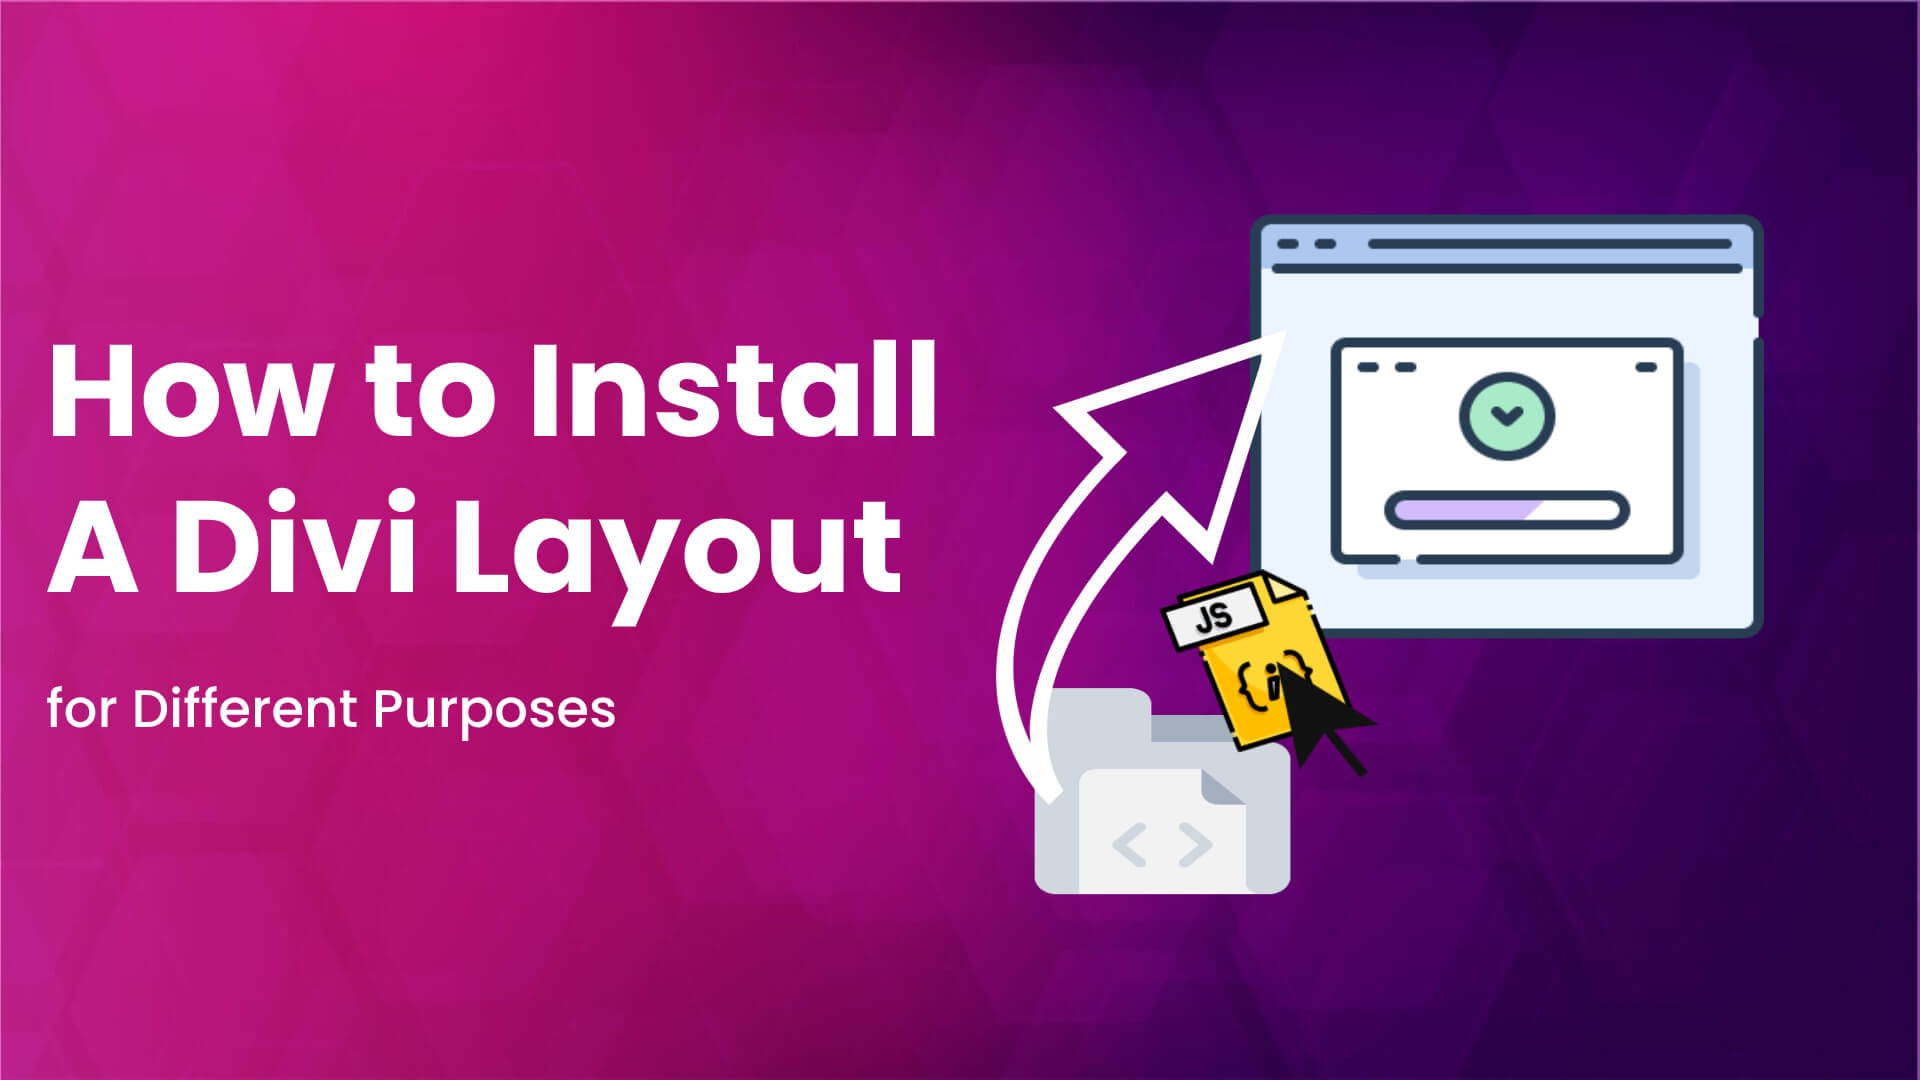 Install a Divi layout to the website for different purposes